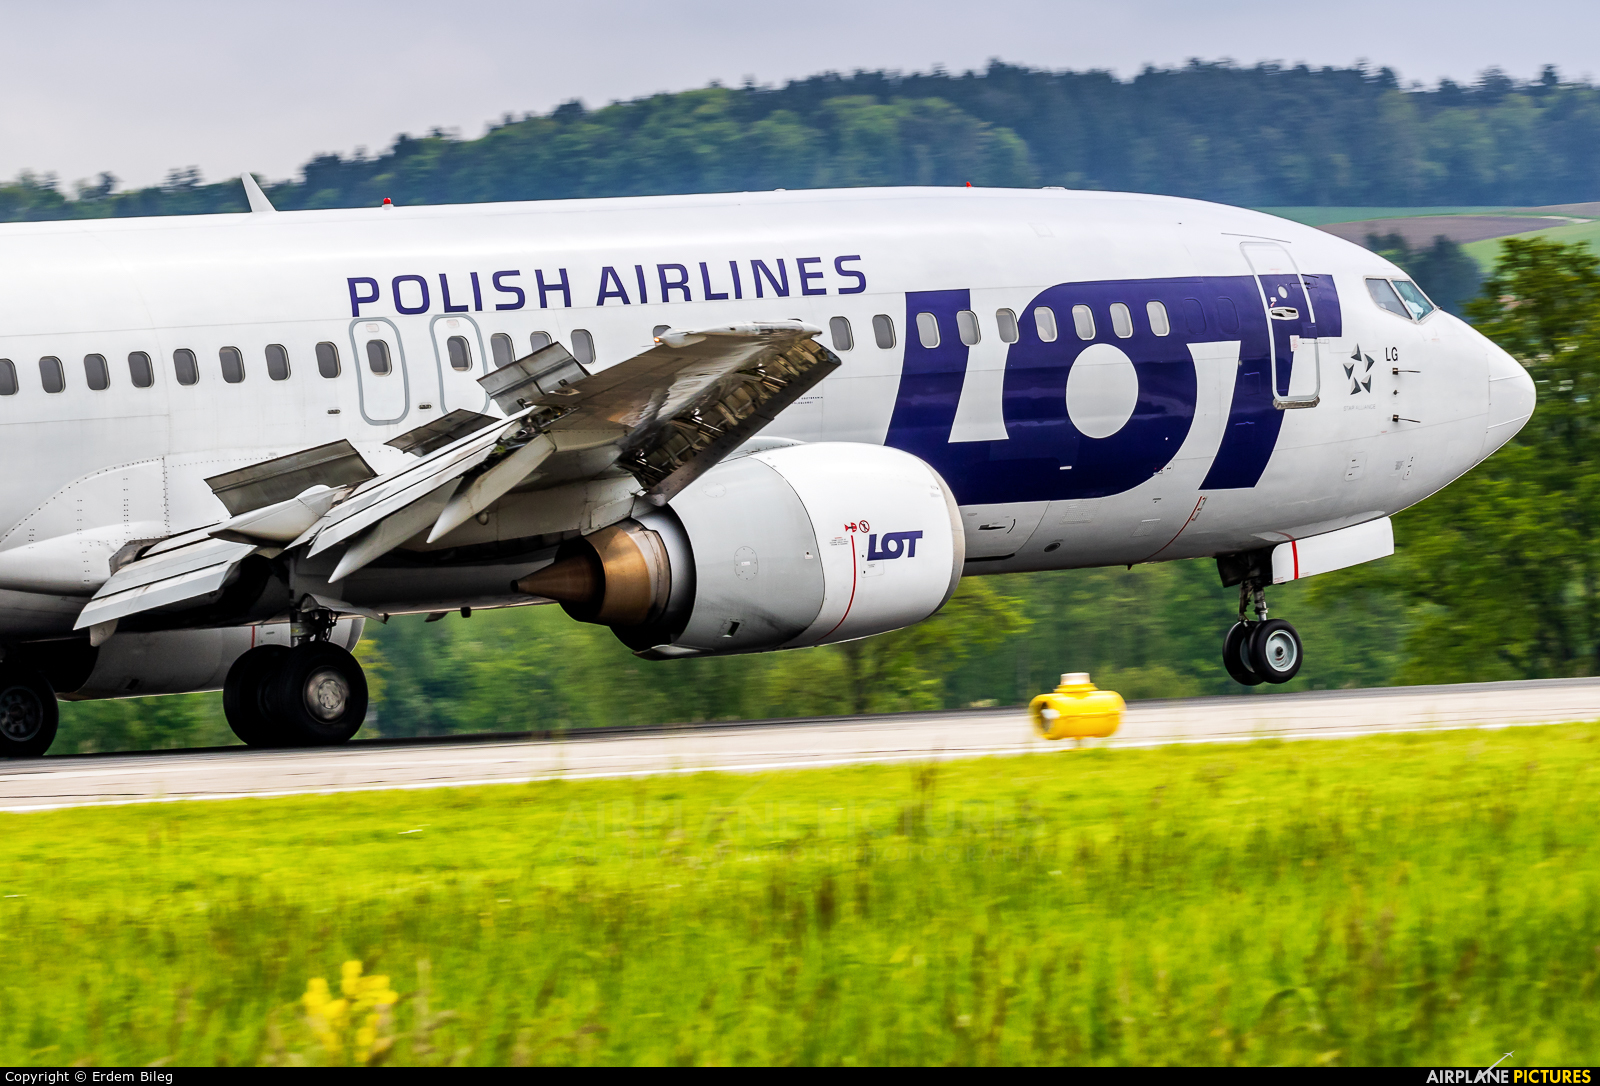 LOT - Polish Airlines SP-LLG aircraft at Zurich